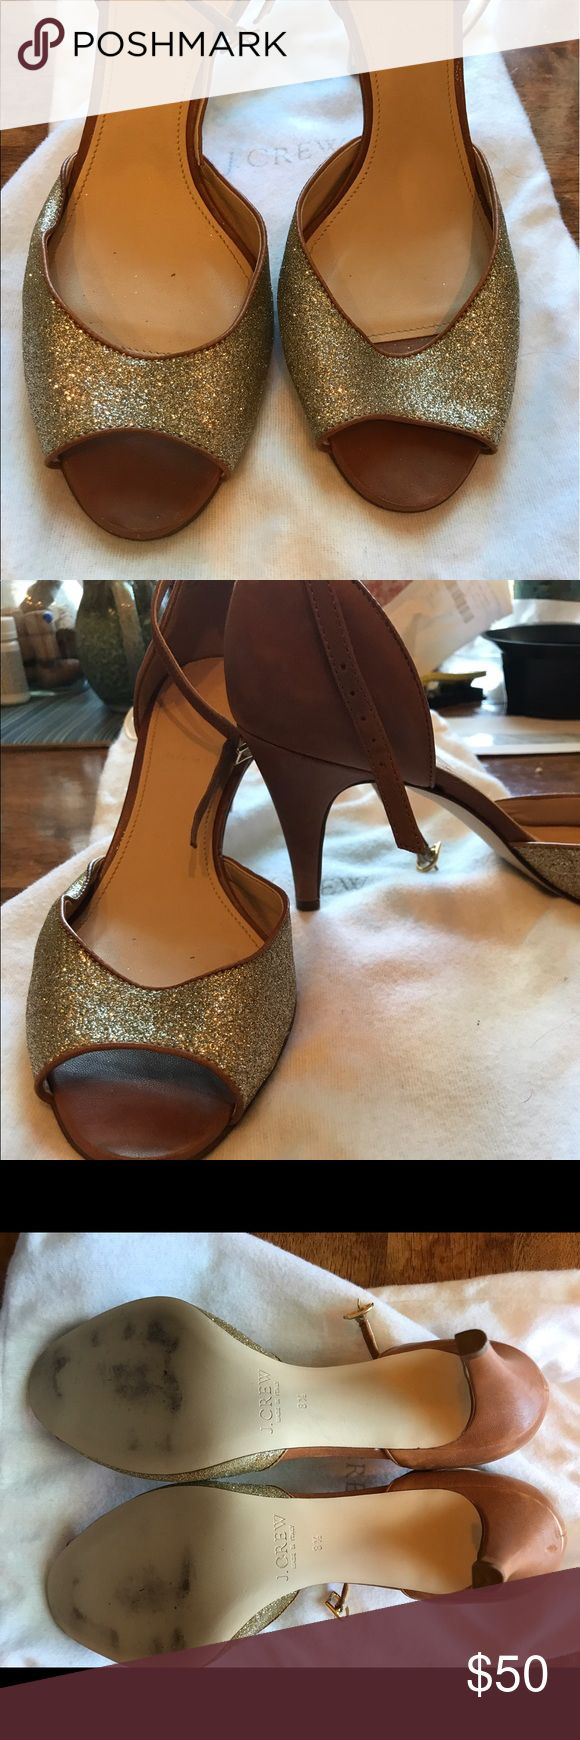 """Jcrew heels Sz 8.5 Worn to one event and have been in a plastic shoe box ever since! Leather with glitter.  Heel is 3"""" high J. Crew Shoes Heels"""